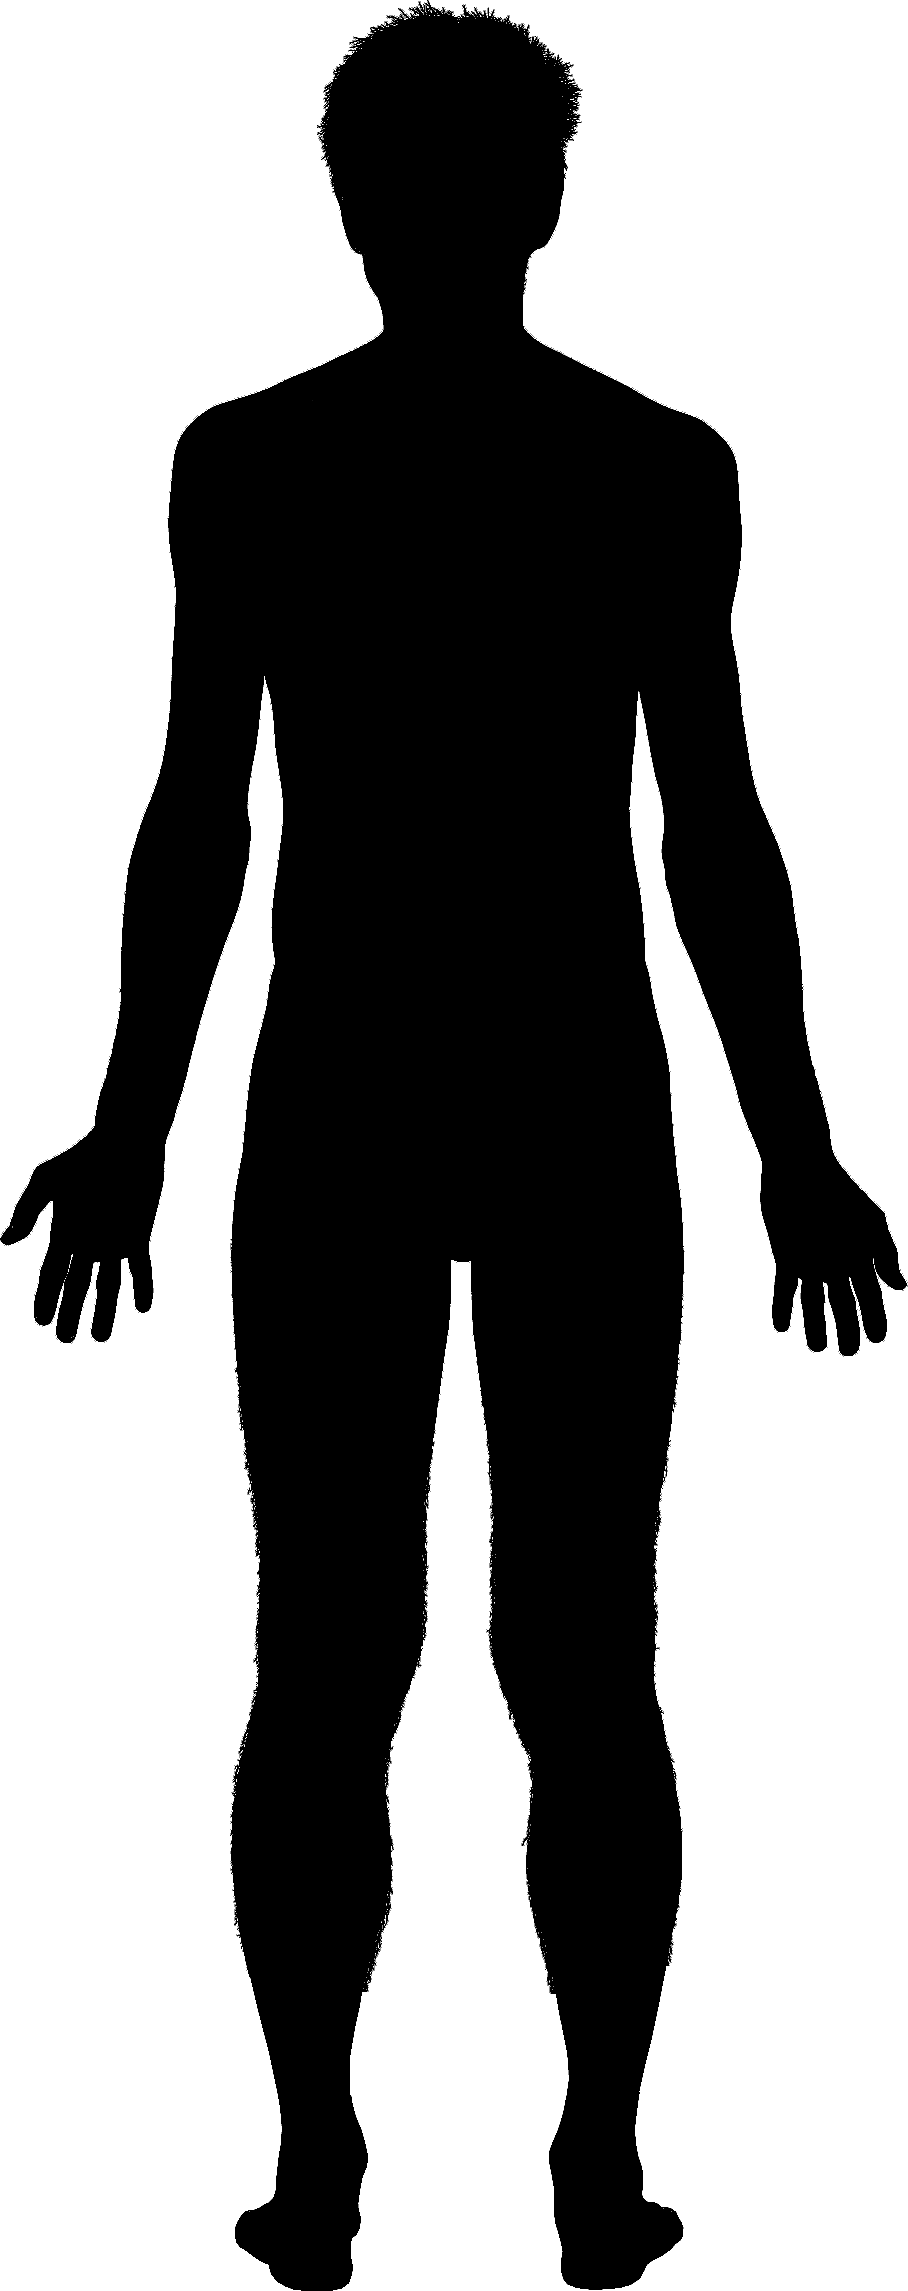 Medical - PNG Human Body Outline